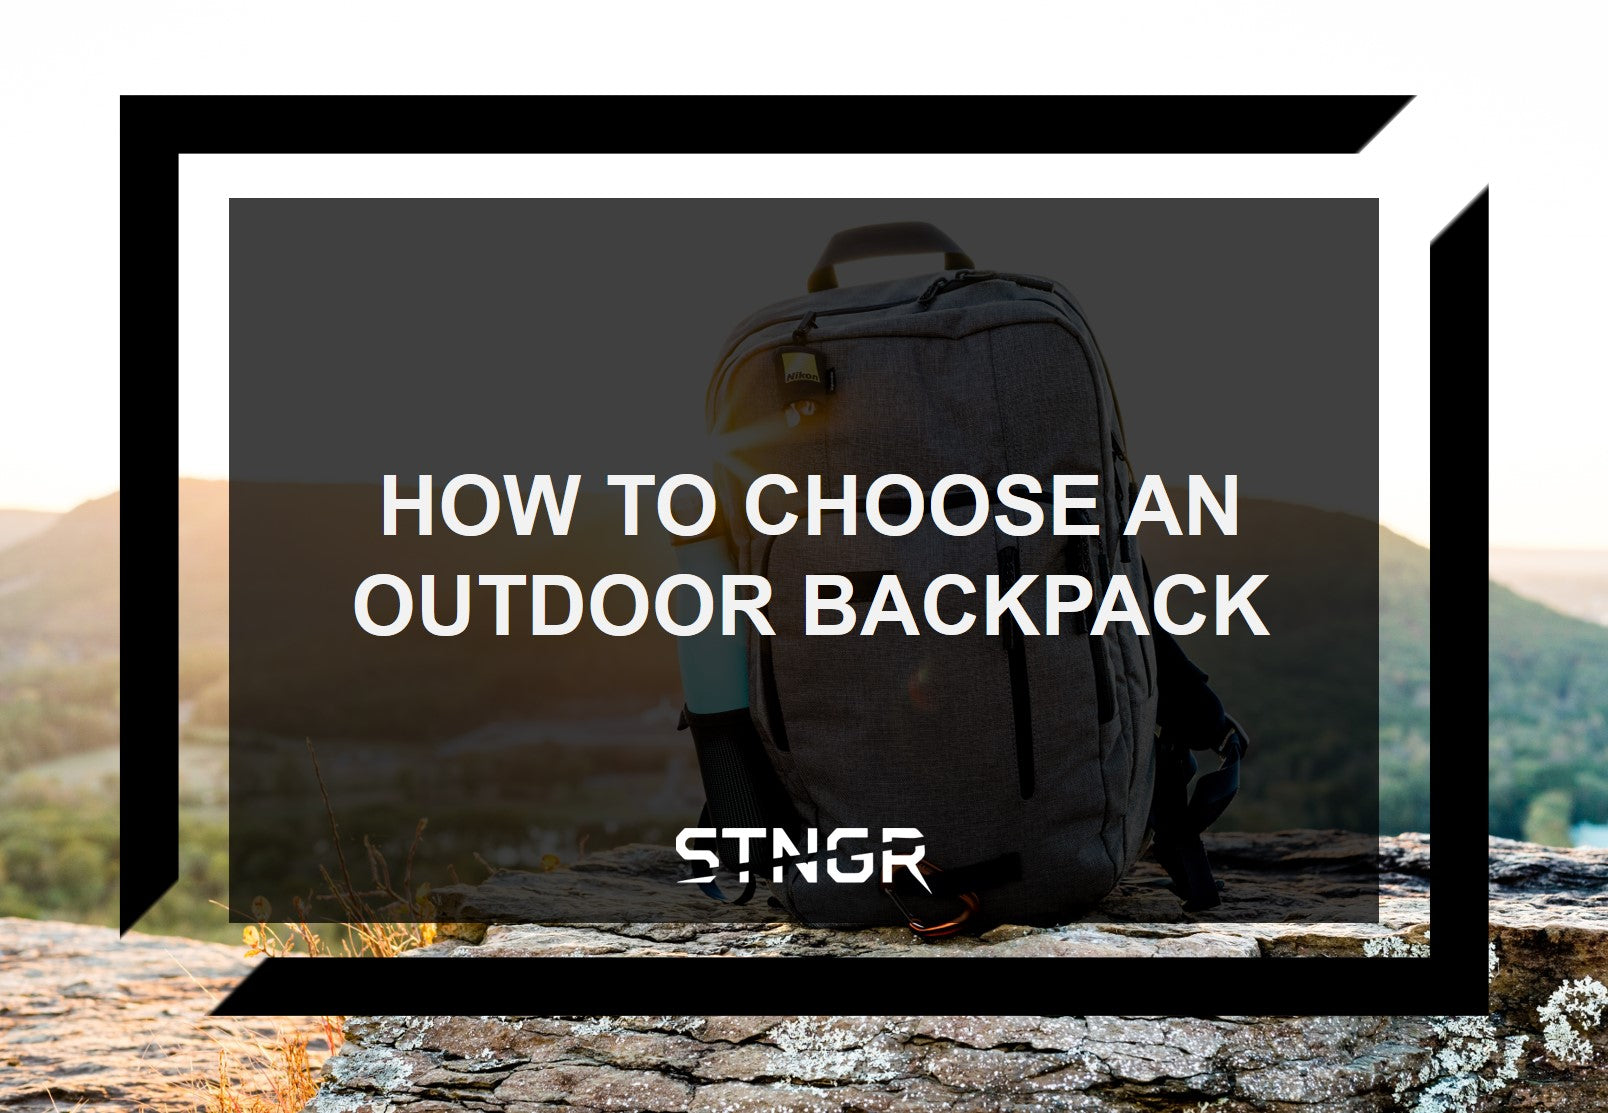 How to Choose an Outdoor Backpack